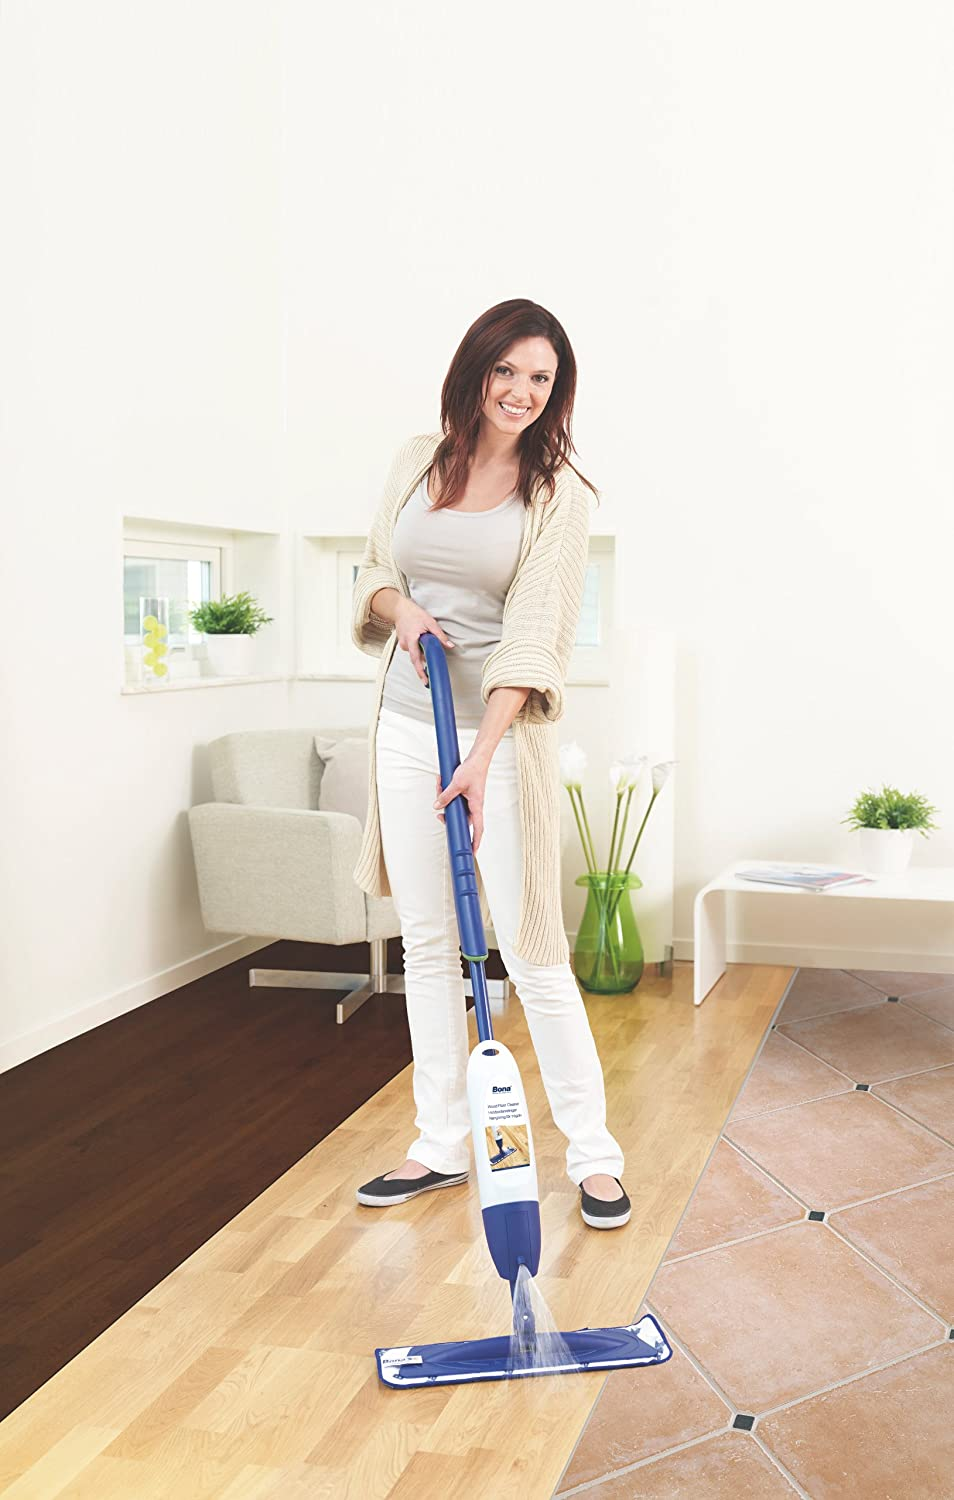 Bona ca202020012 tile and laminate spray mop kit amazon bona ca202020012 tile and laminate spray mop kit amazon kitchen home dailygadgetfo Images